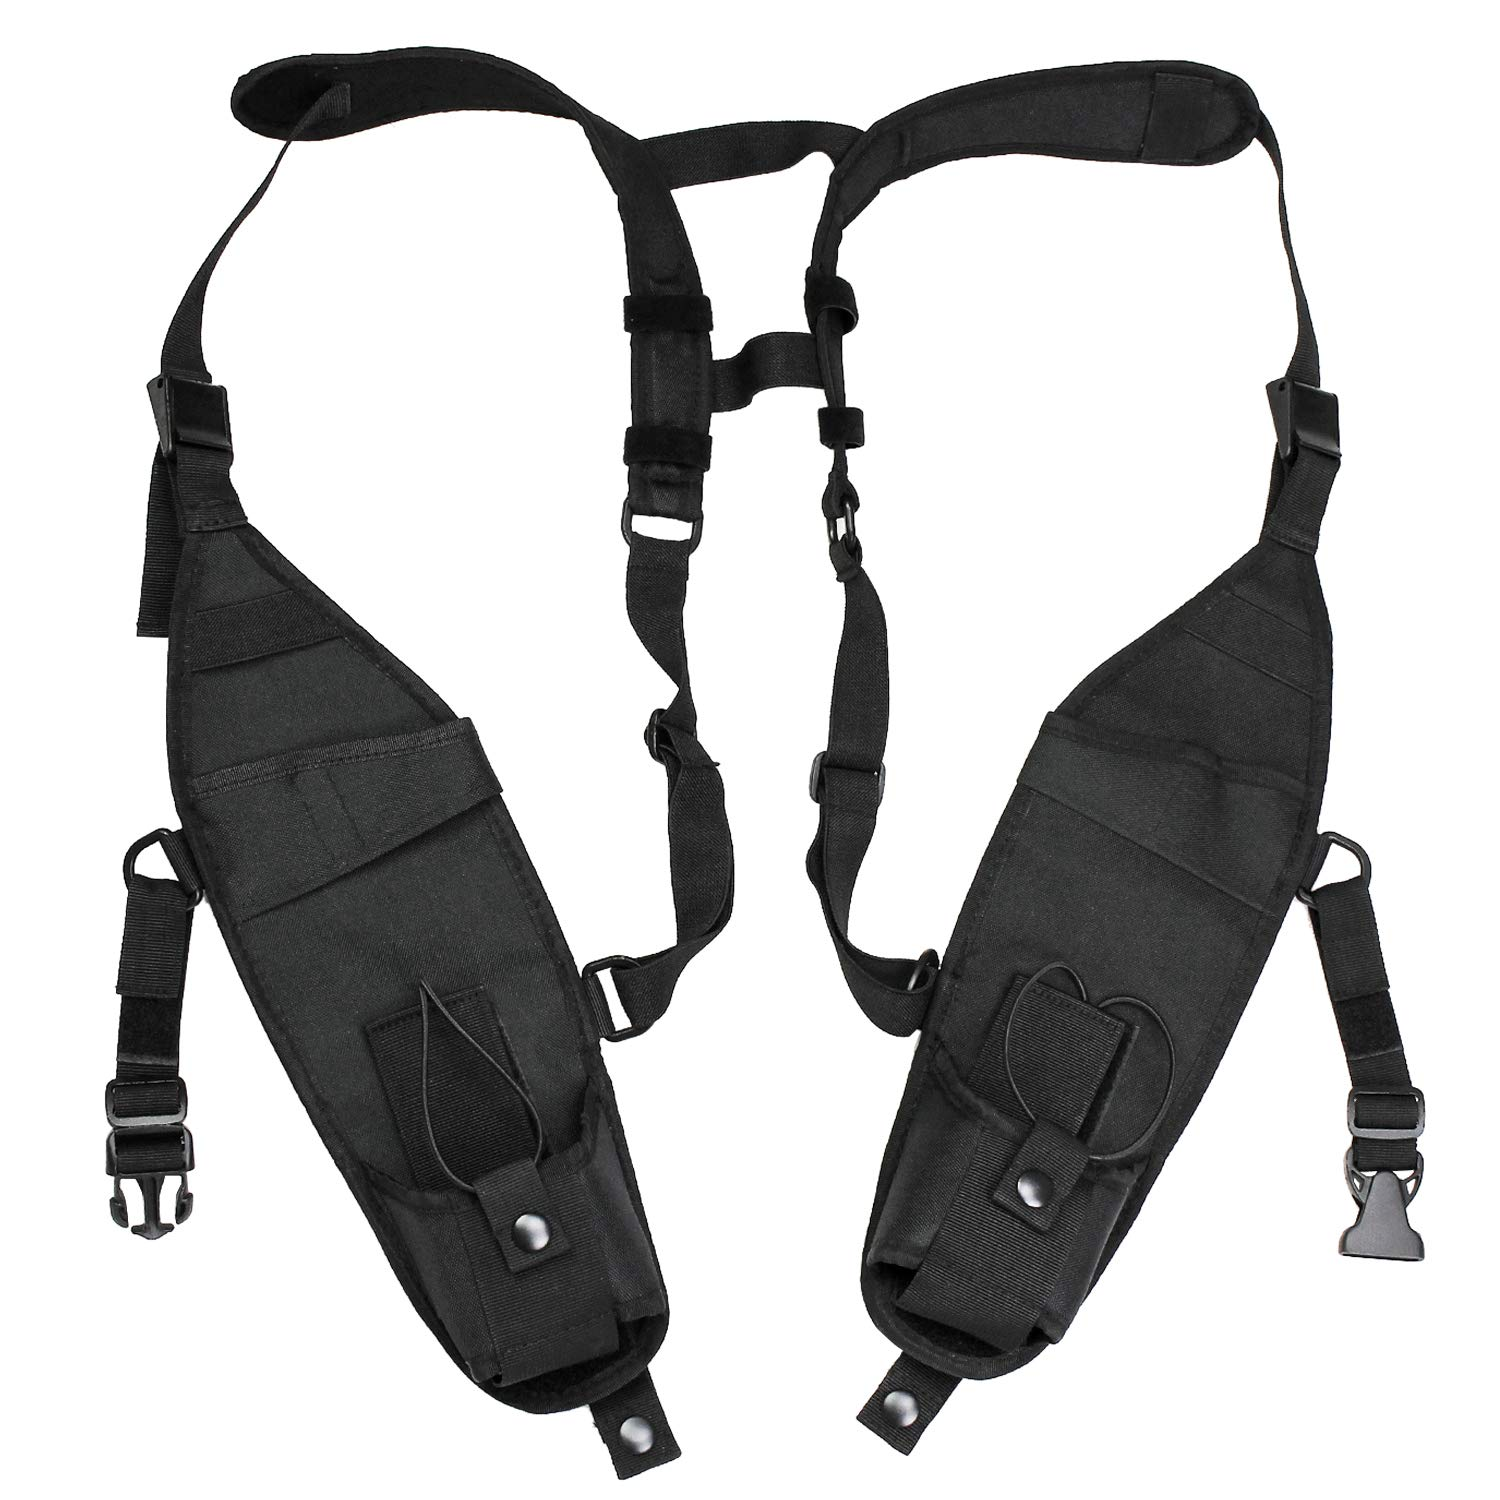 abcGoodefg Universal Double Radio Shoulder Holster Chest Harness Holder Vest Rig for Two Way Radio Rescue Essentials by abcGoodefg